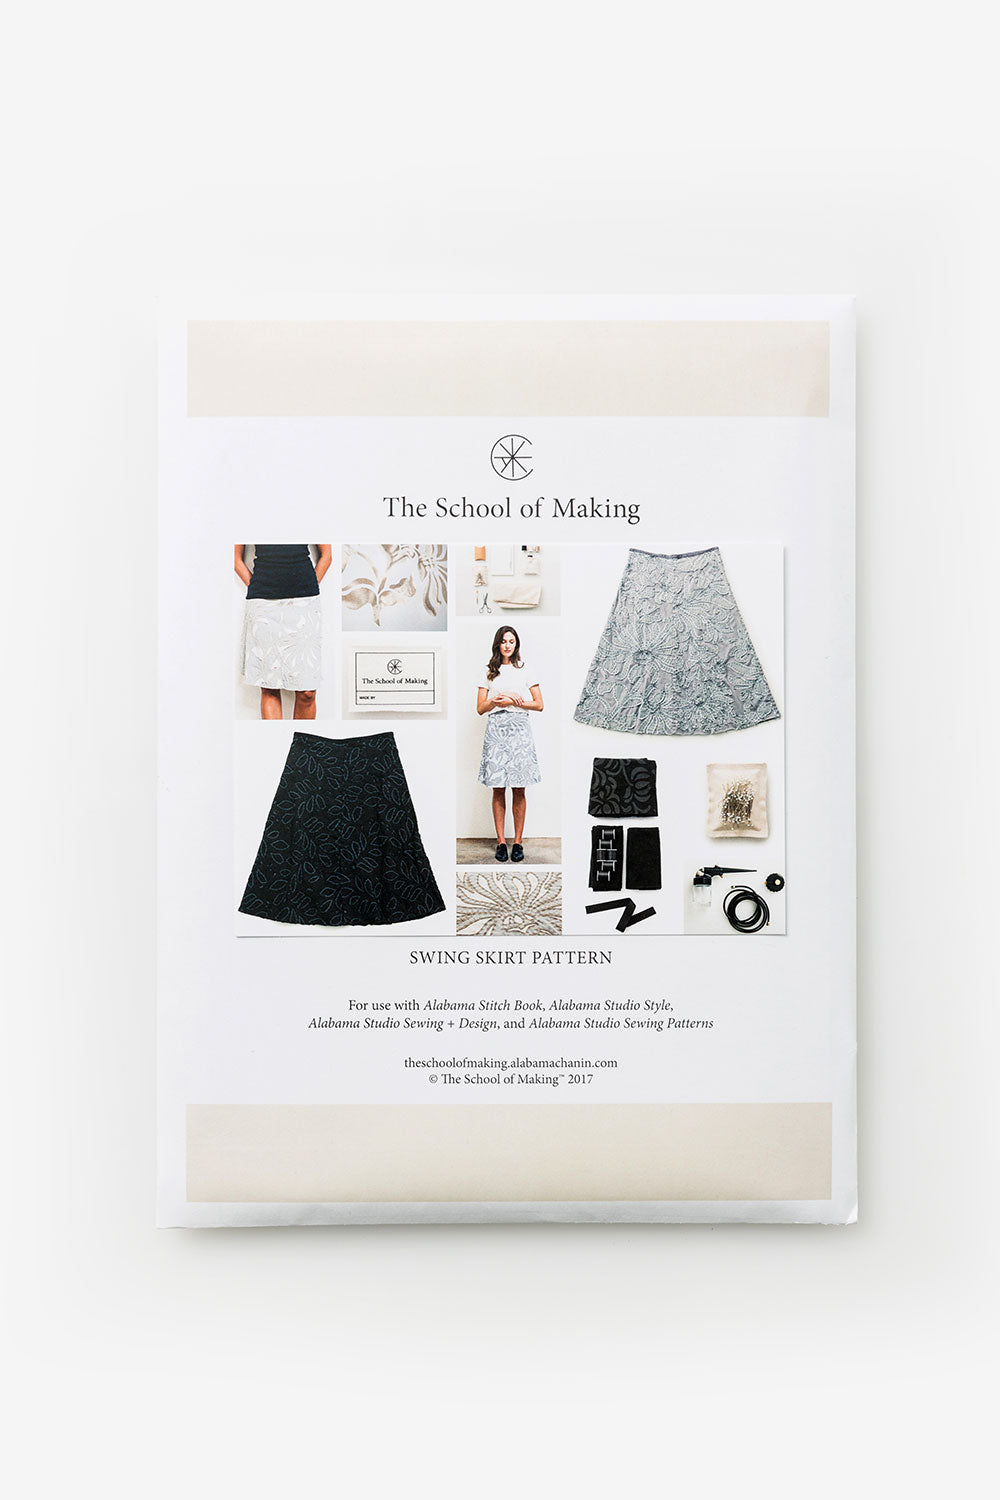 The School of Making Abstract Bundle Swing Skirt Pattern made with Organic Cotton Abstract Design